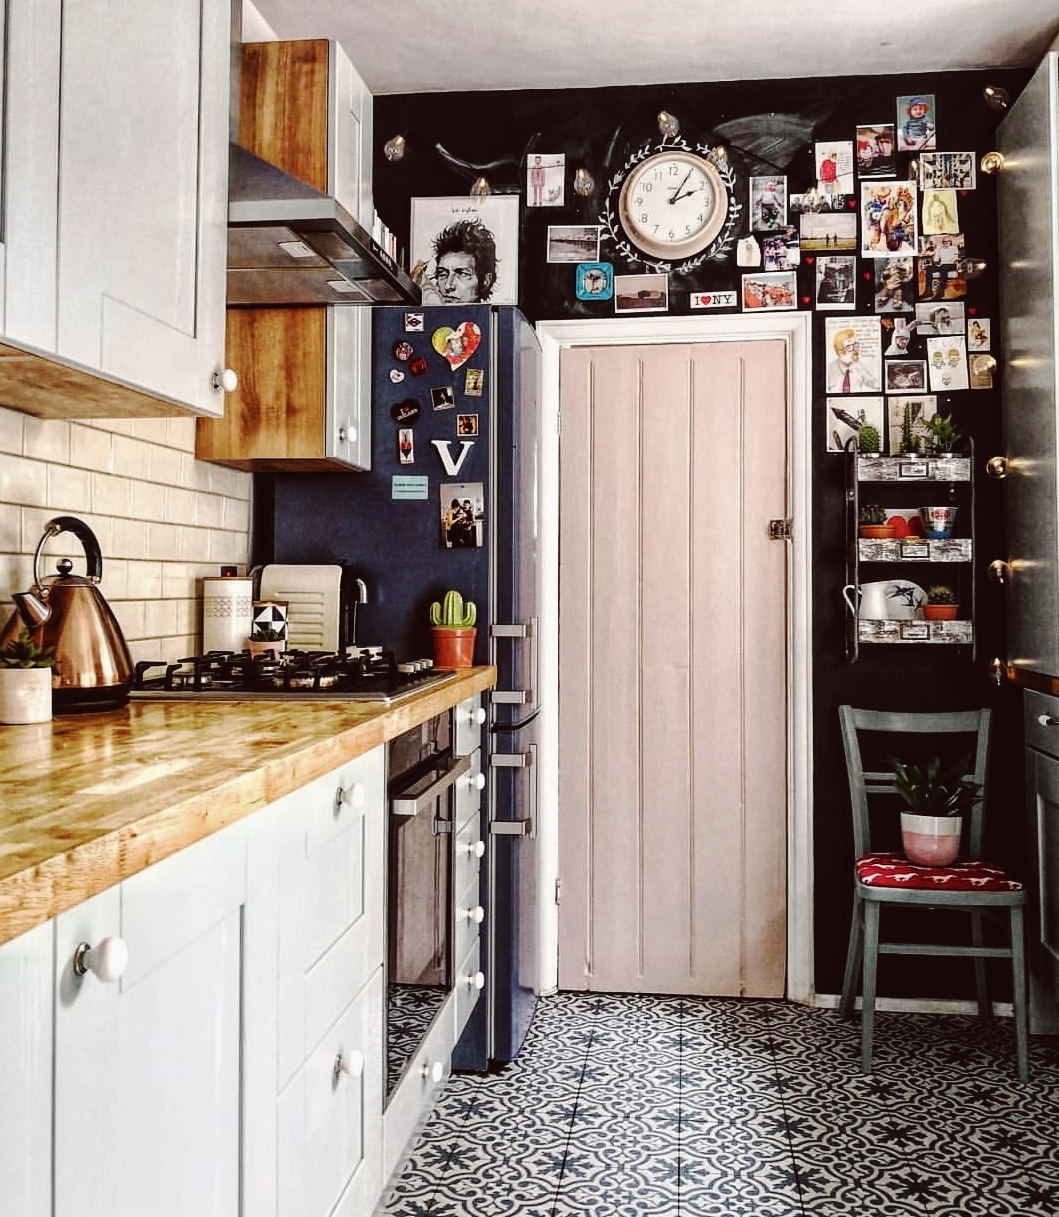 Kitchen with chalkboard wall and pink door